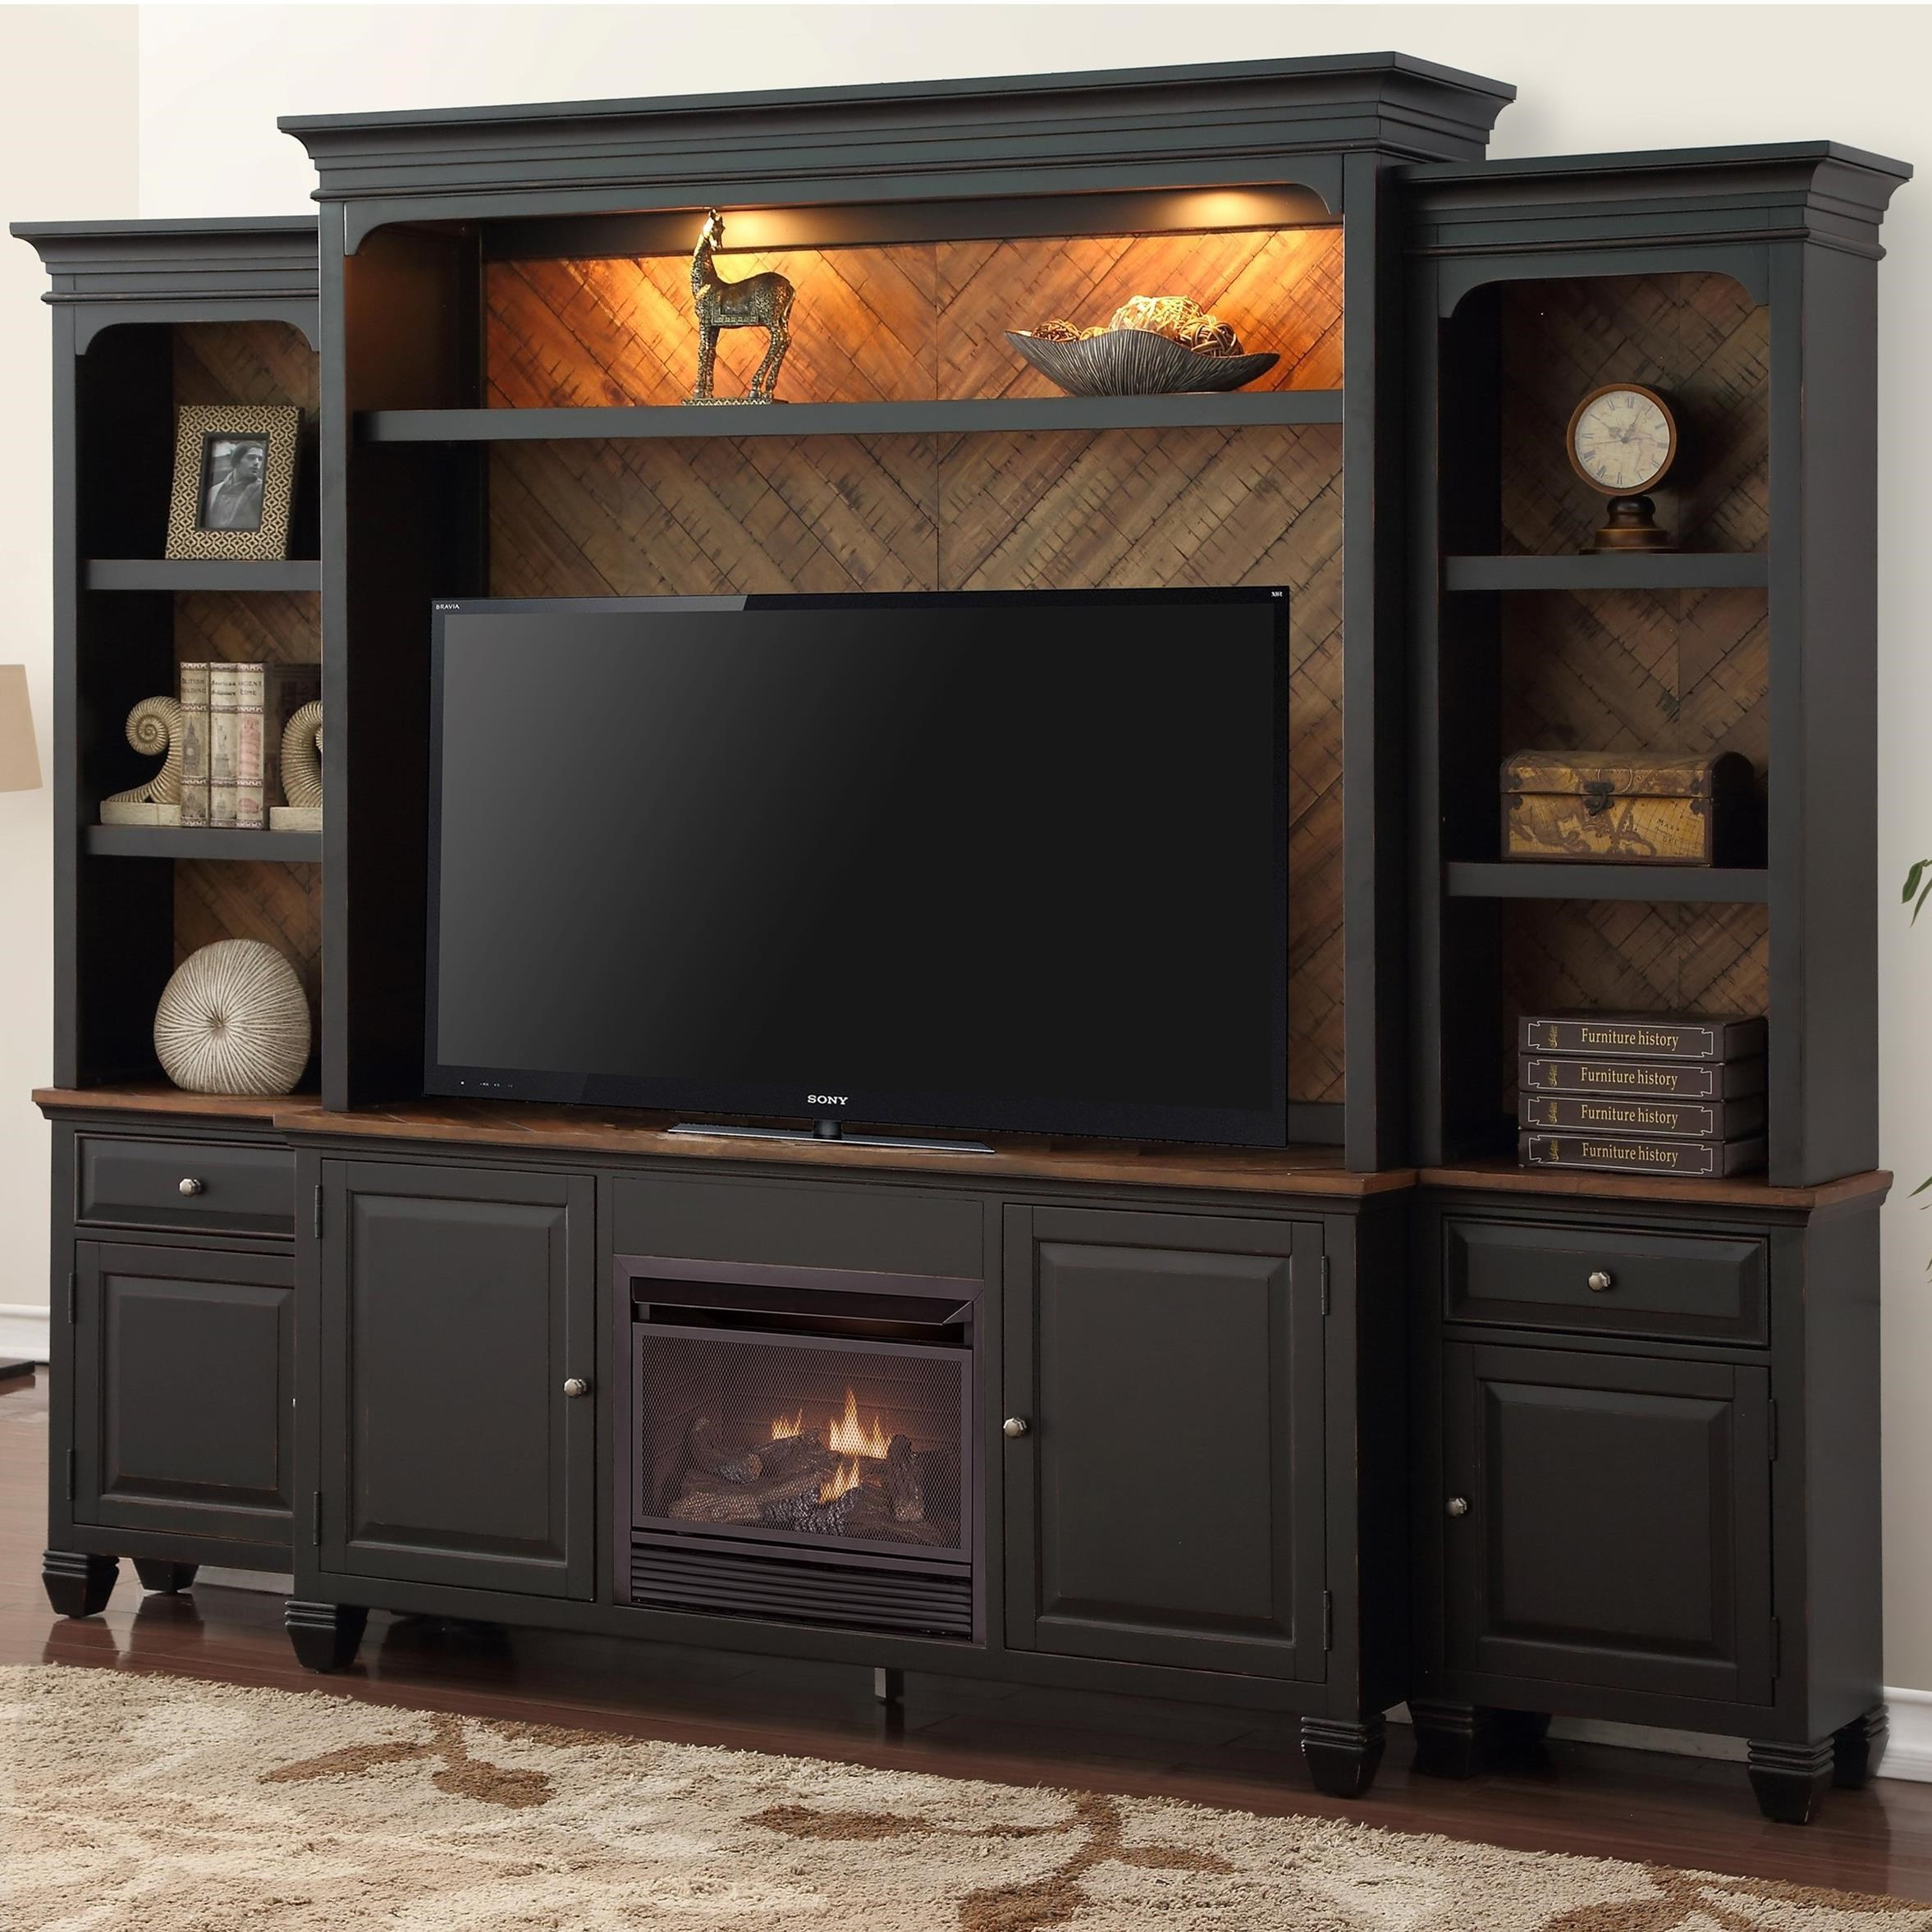 Brighton Fireplace Entertainment Wall Console With Lighting By Legends Furniture At Barn